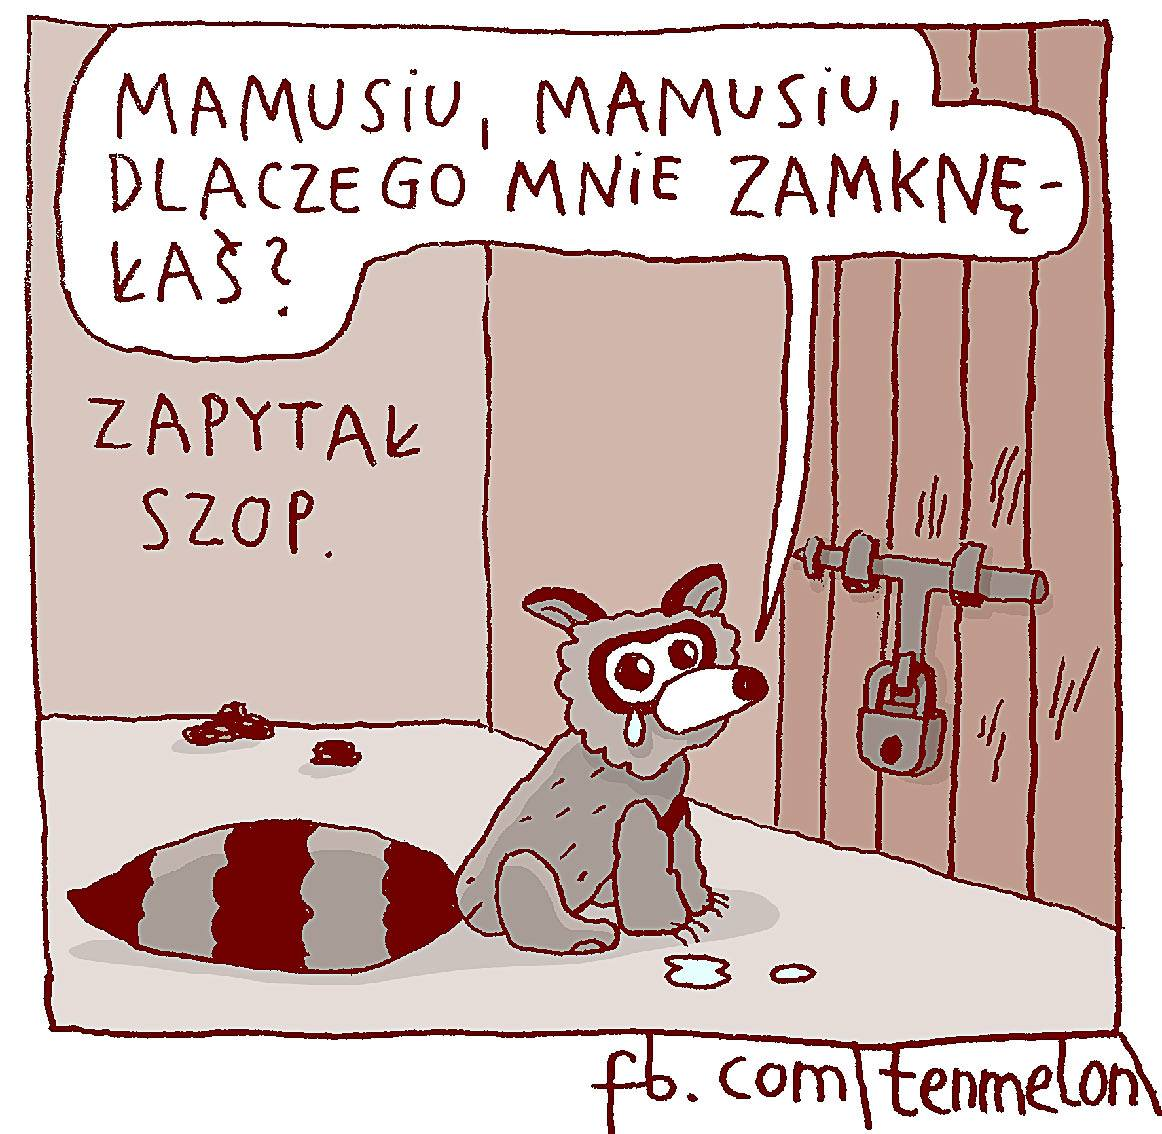 "(""Mommy, mommy, why have you locked me up?"" asked the raccoon)"